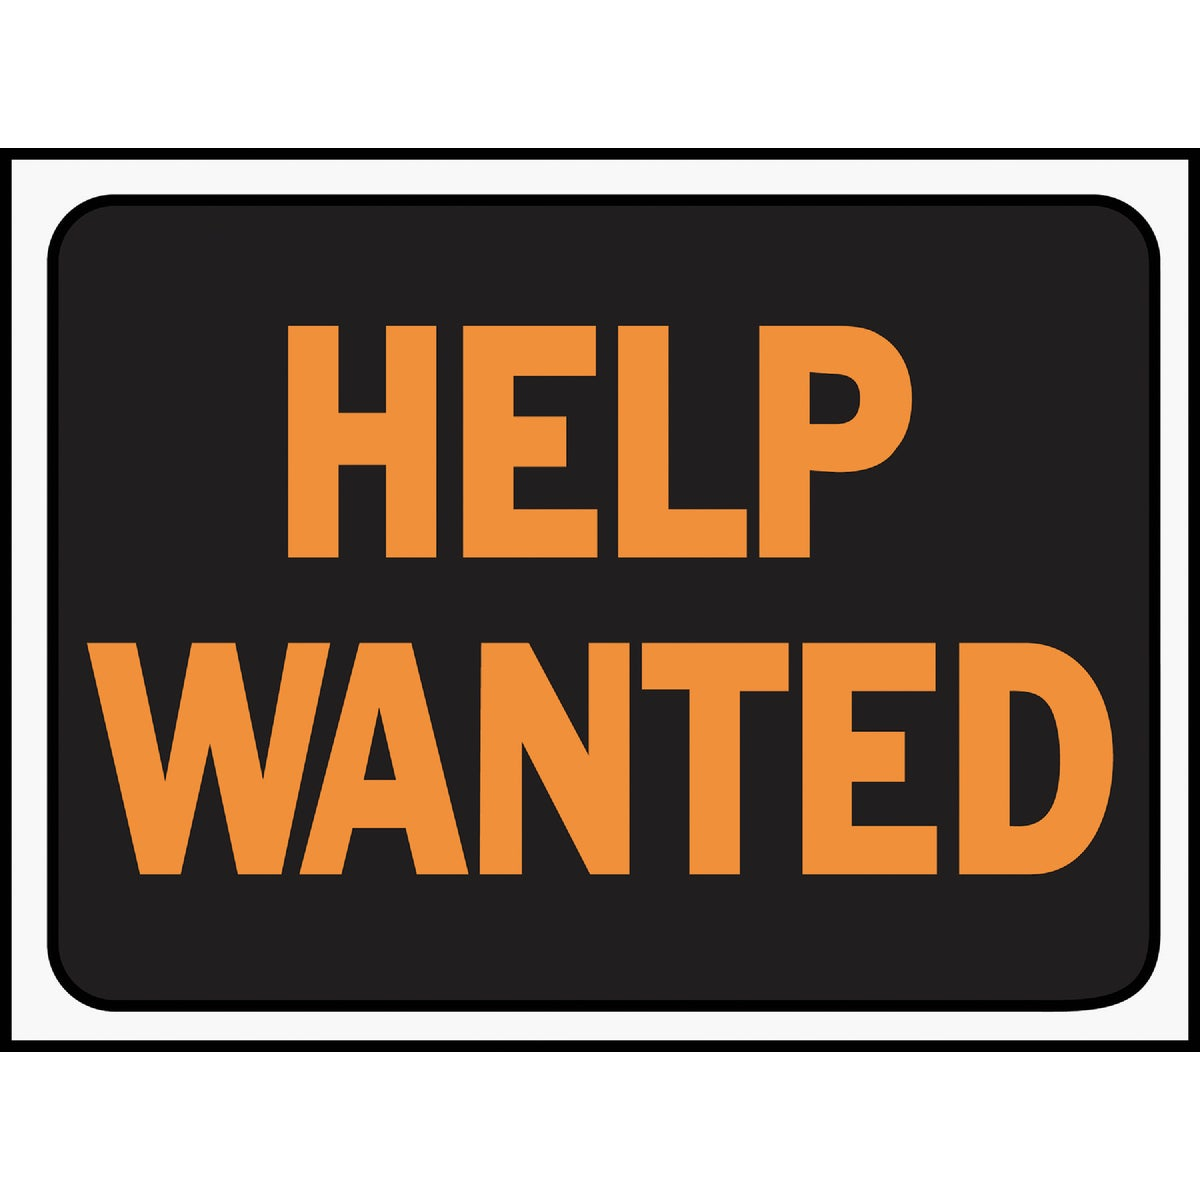 9X12 HELP WANTED SIGN - 3034 by Hy Ko Prods Co